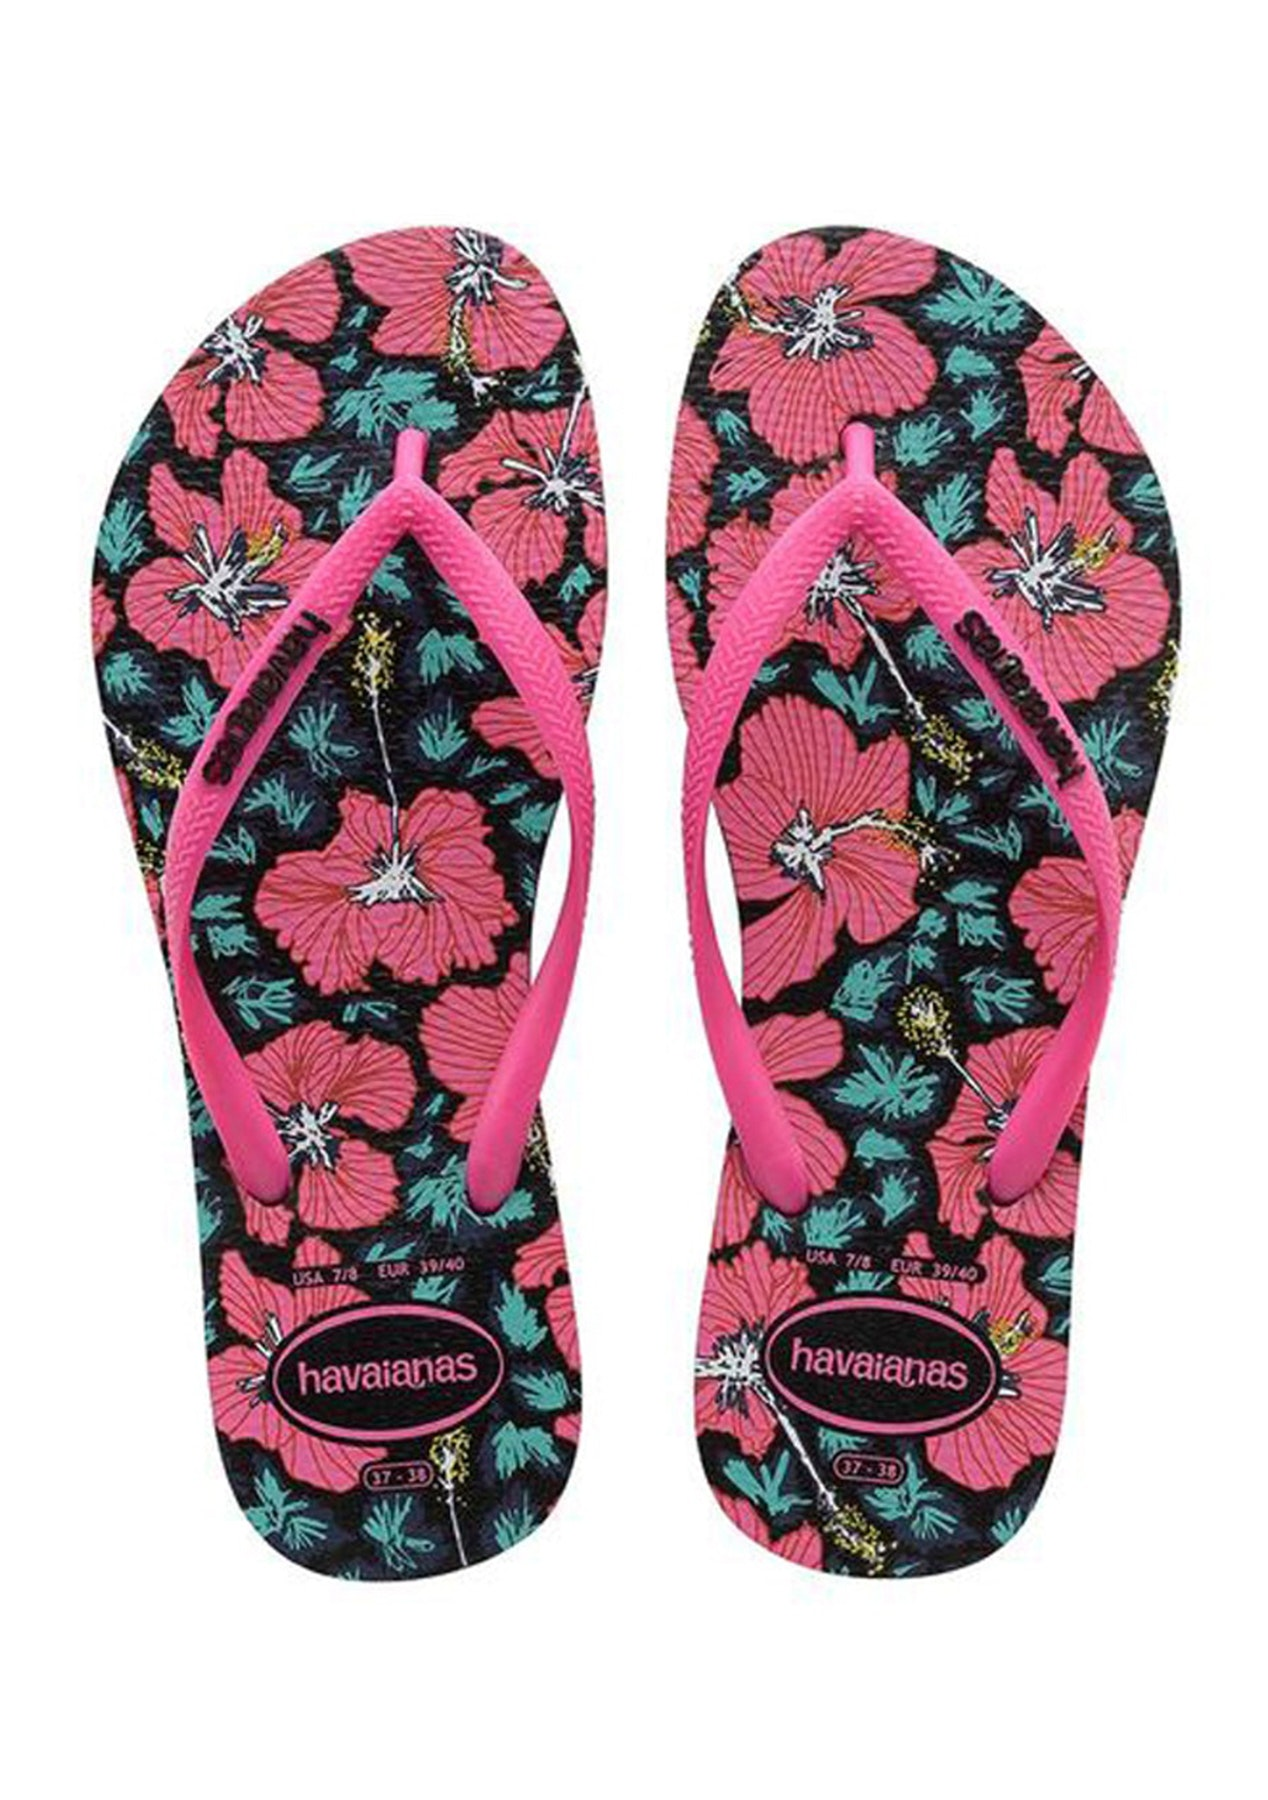 0913f5e1f353 Havaianas - Slim Floral 8906 Black Orchid Rose - Ipanema Havaianas  Clearance - Onceit